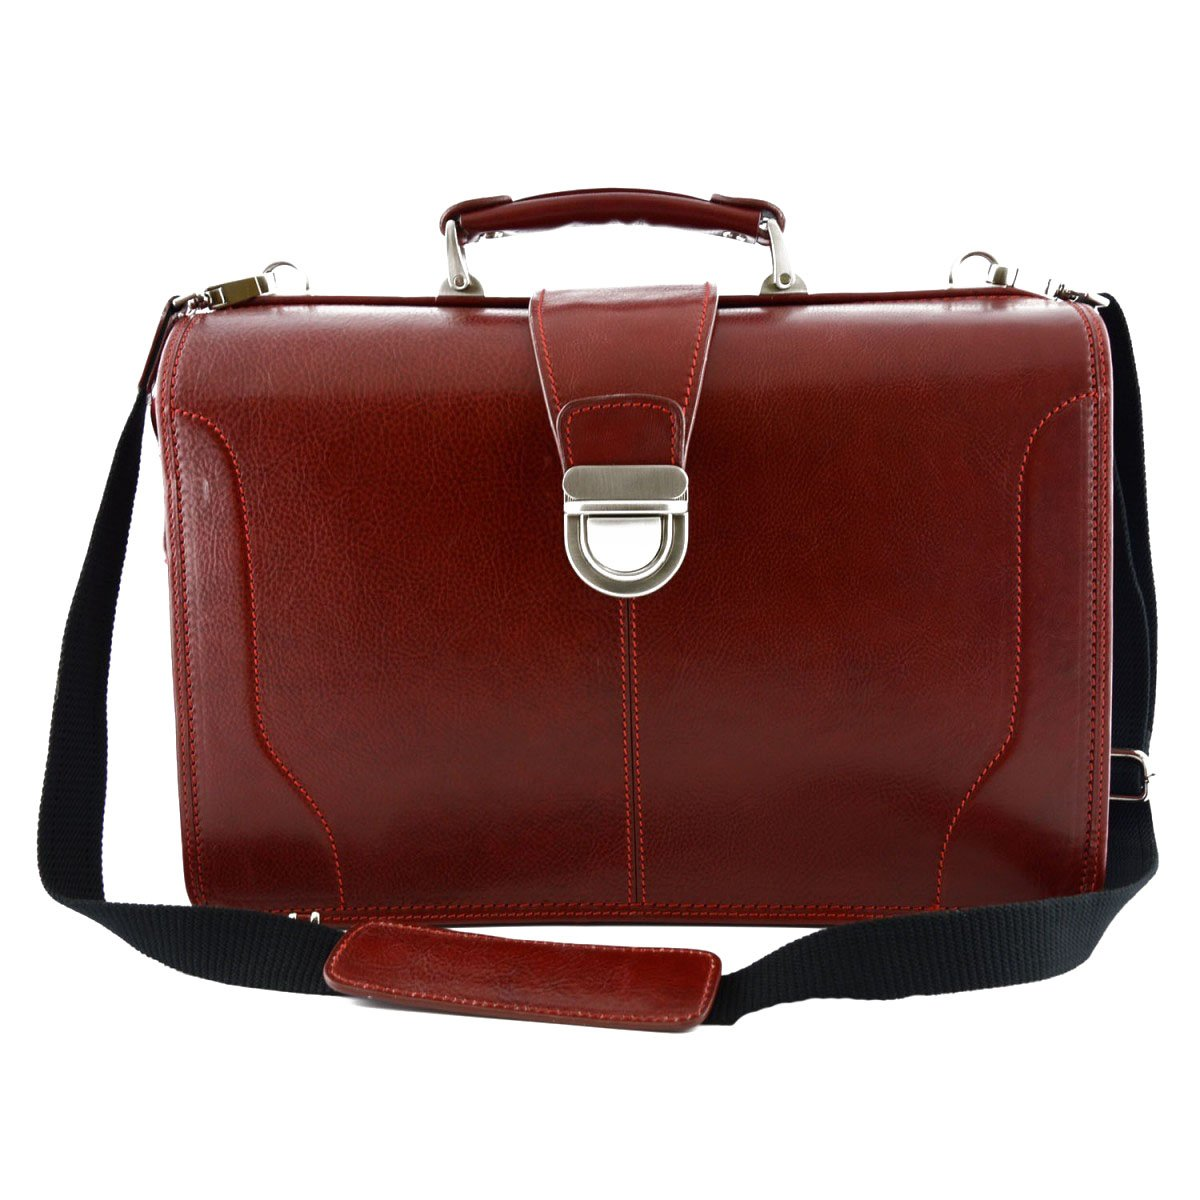 Made In Italy Genuine Leather Doctor Bag, Three Compartments Color Red - Business Bag B016CV6CZ2